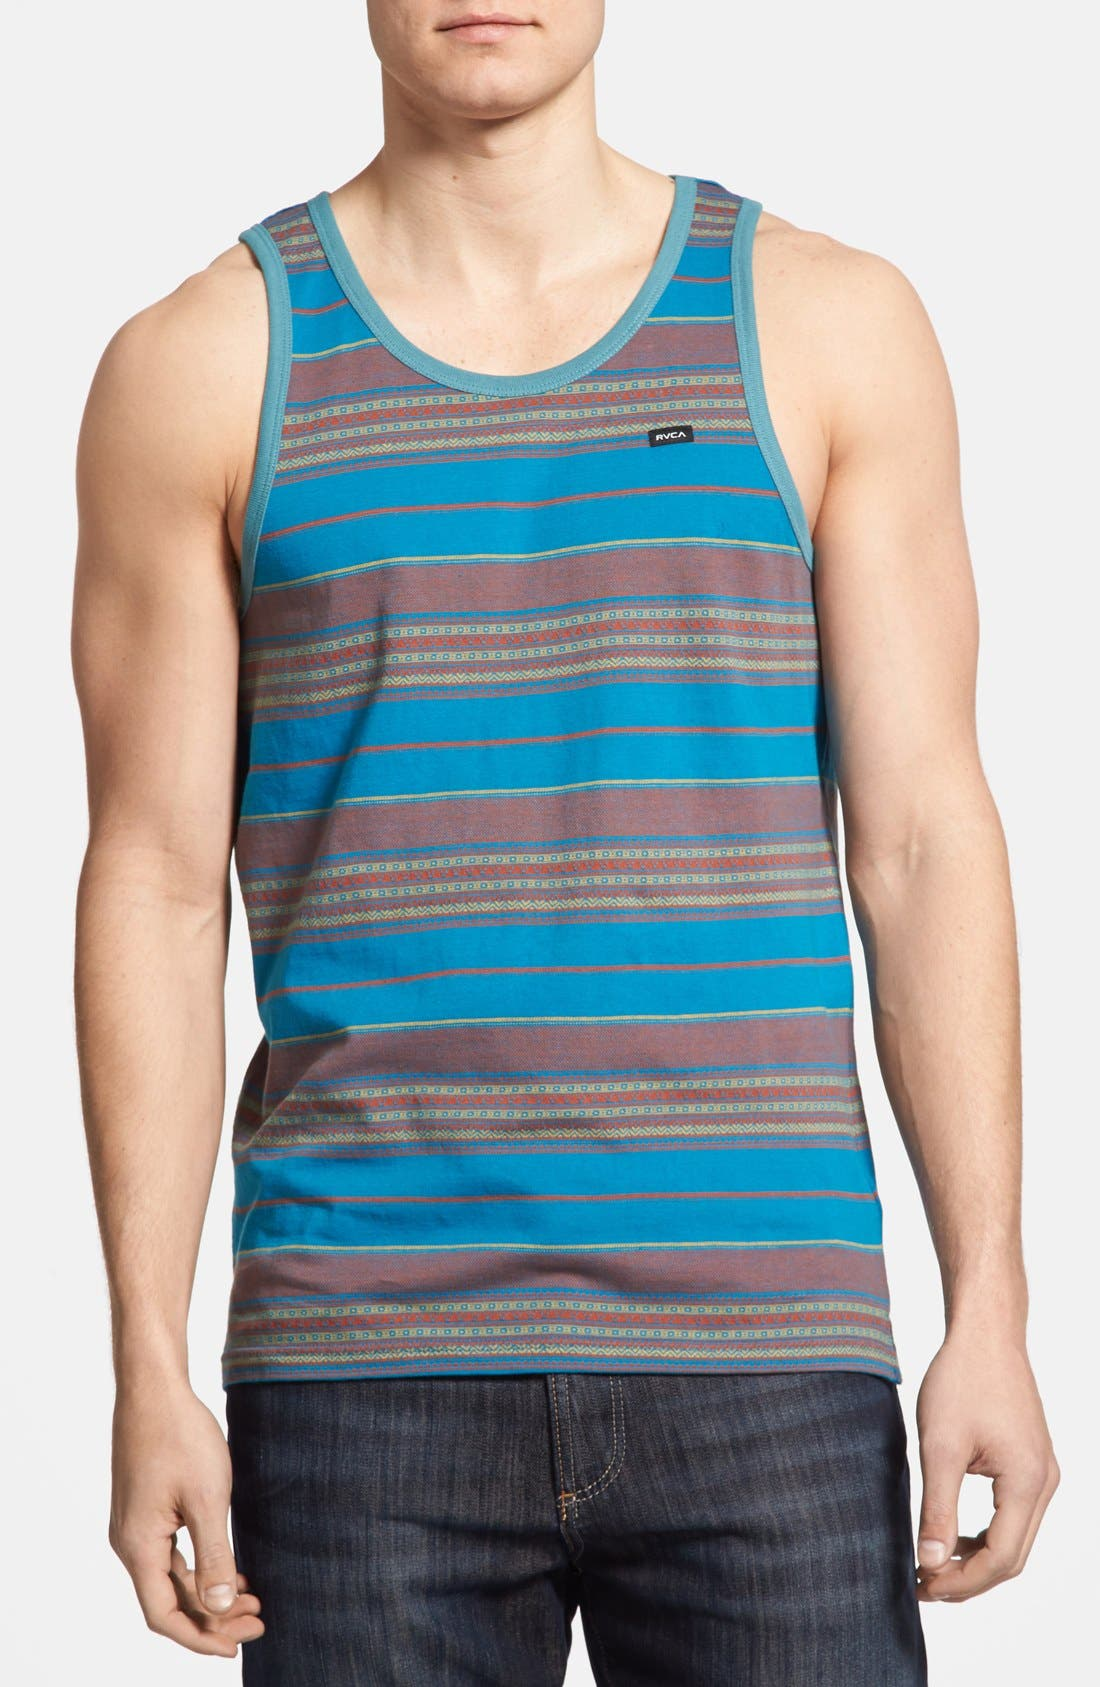 Alternate Image 1 Selected - RVCA 'Canyon' Stripe Tank Top